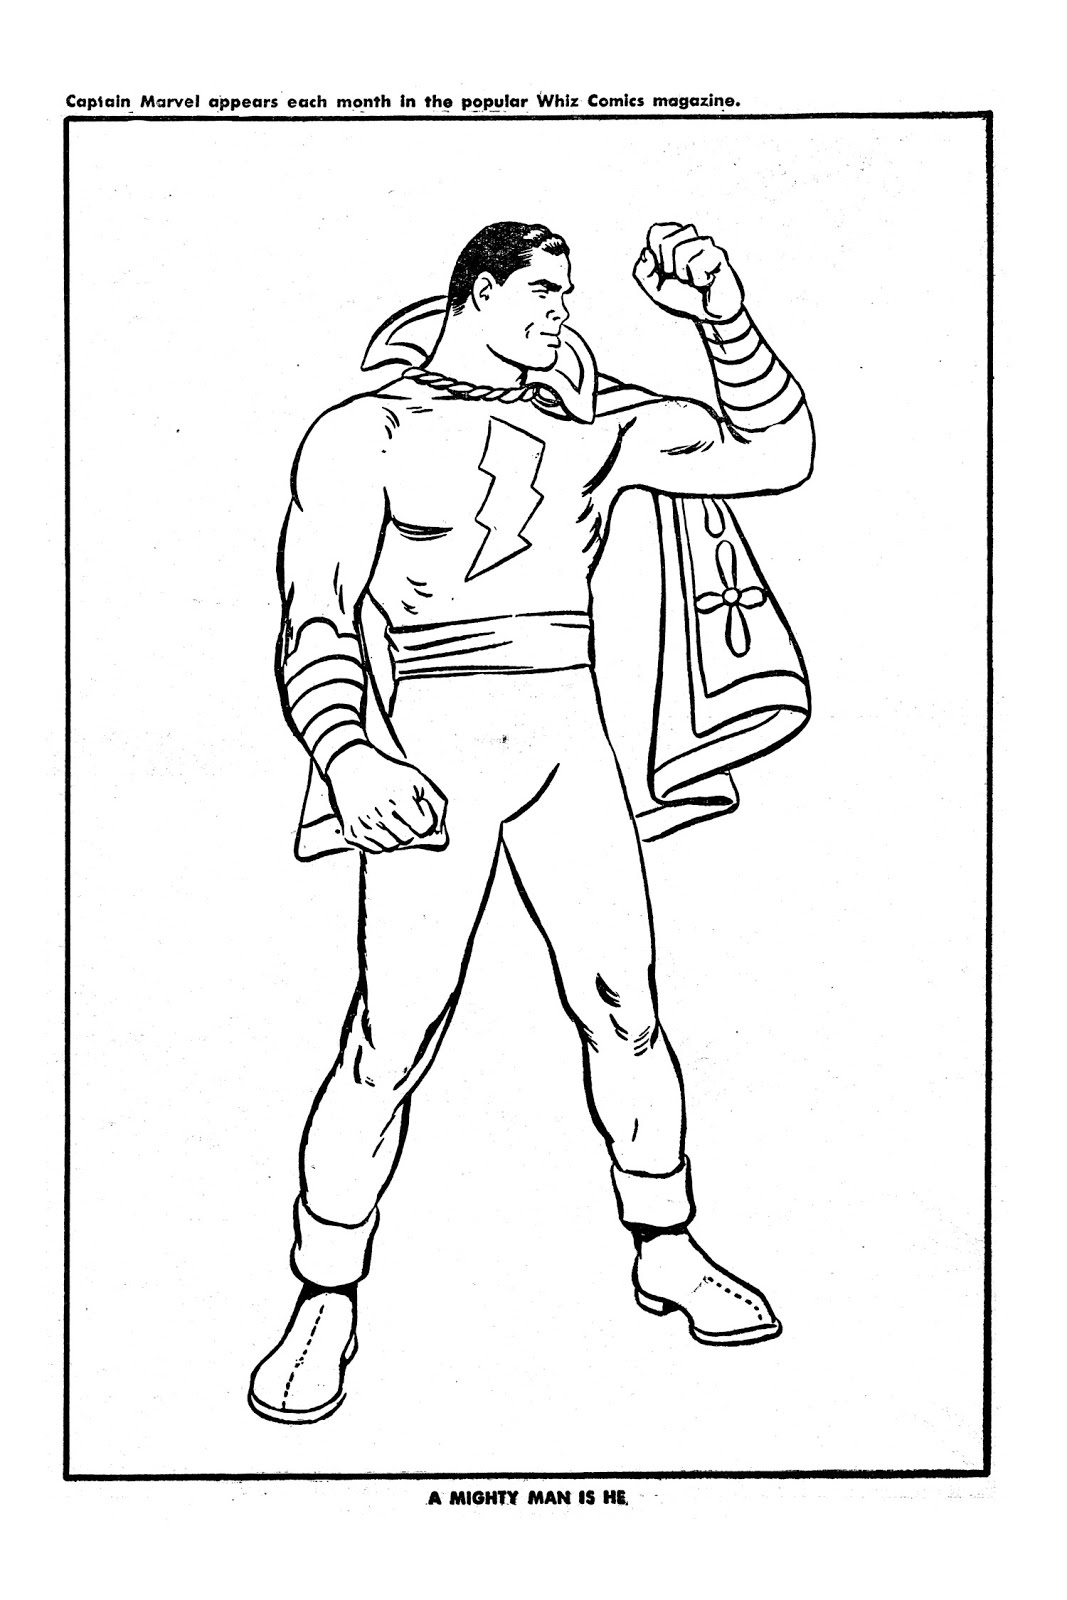 easy captain marvel coloring pages angry captain marvel coloring page free printable captain coloring pages marvel easy